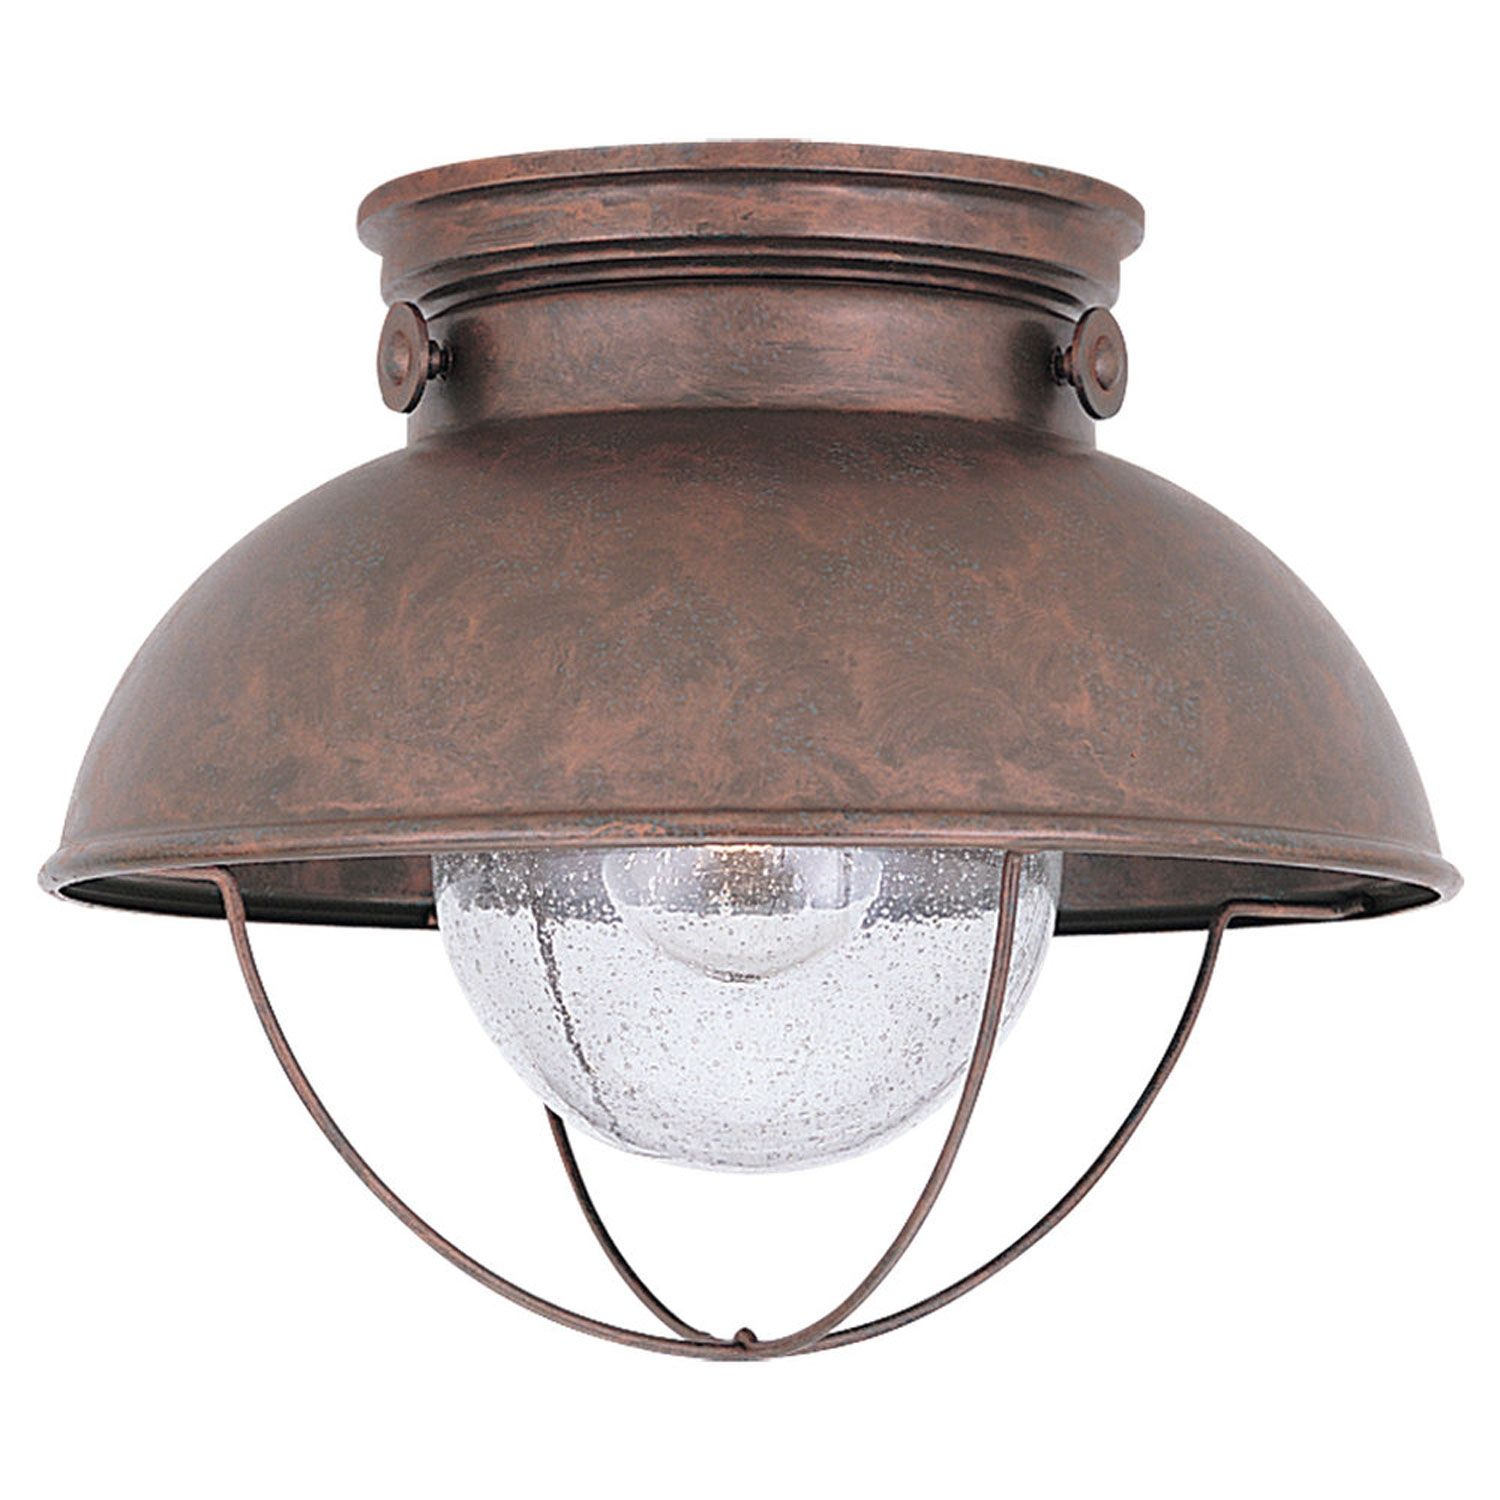 ceiling mounted outdoor porch lights http afshowcaseprop com